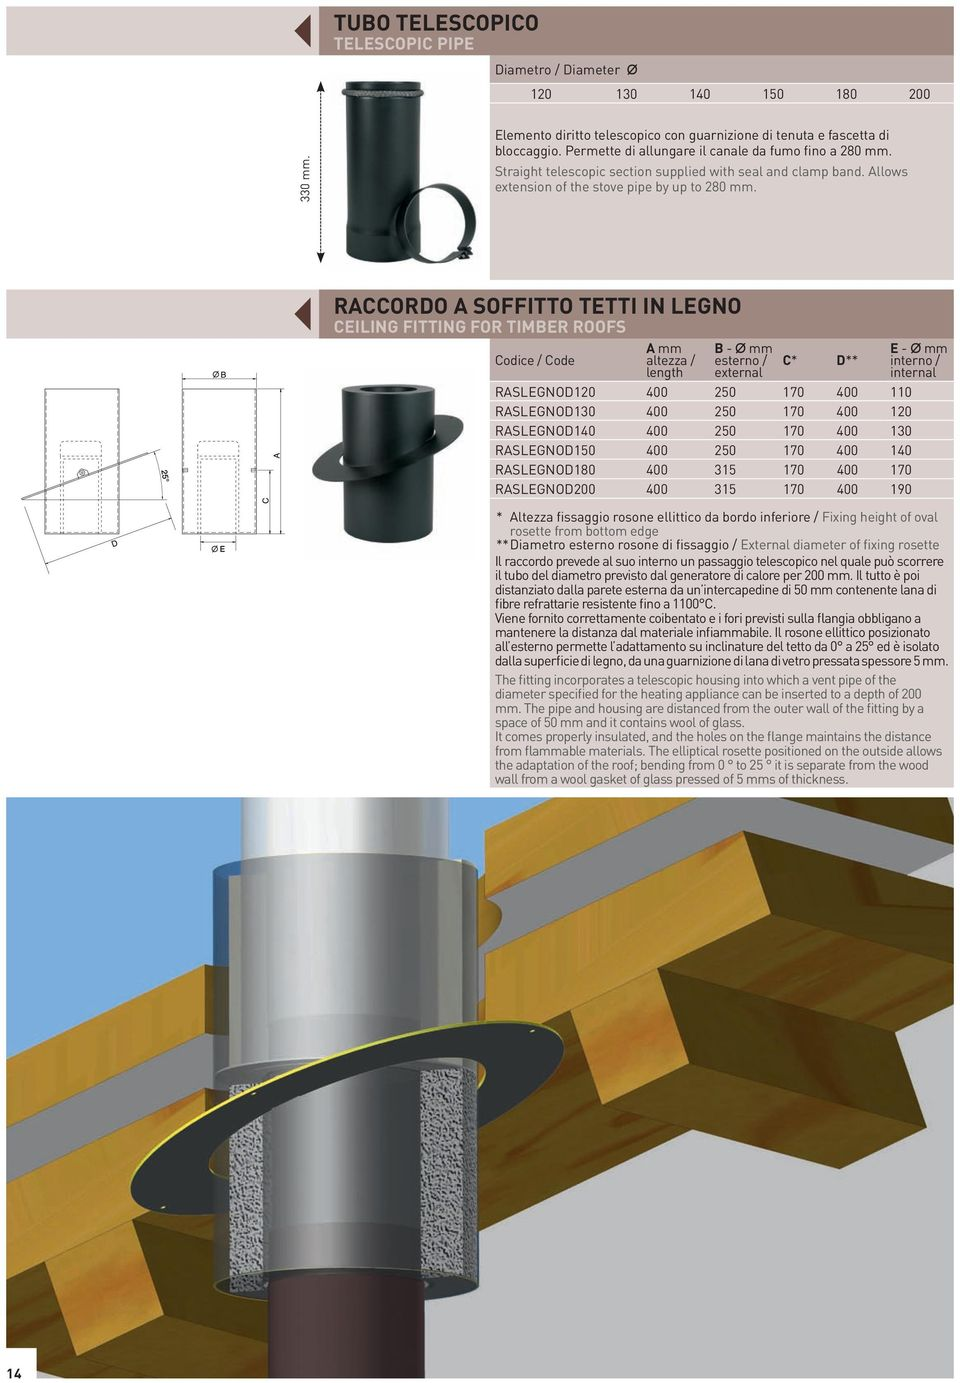 RACCORDO A SOFFITTO TETTI IN LEGNO CEILING FITTING FOR TIMBER ROOFS A mm altezza / length C* D** RASLEGNOD120 400 250 170 400 110 RASLEGNOD130 400 250 170 400 120 RASLEGNOD140 400 250 170 400 130